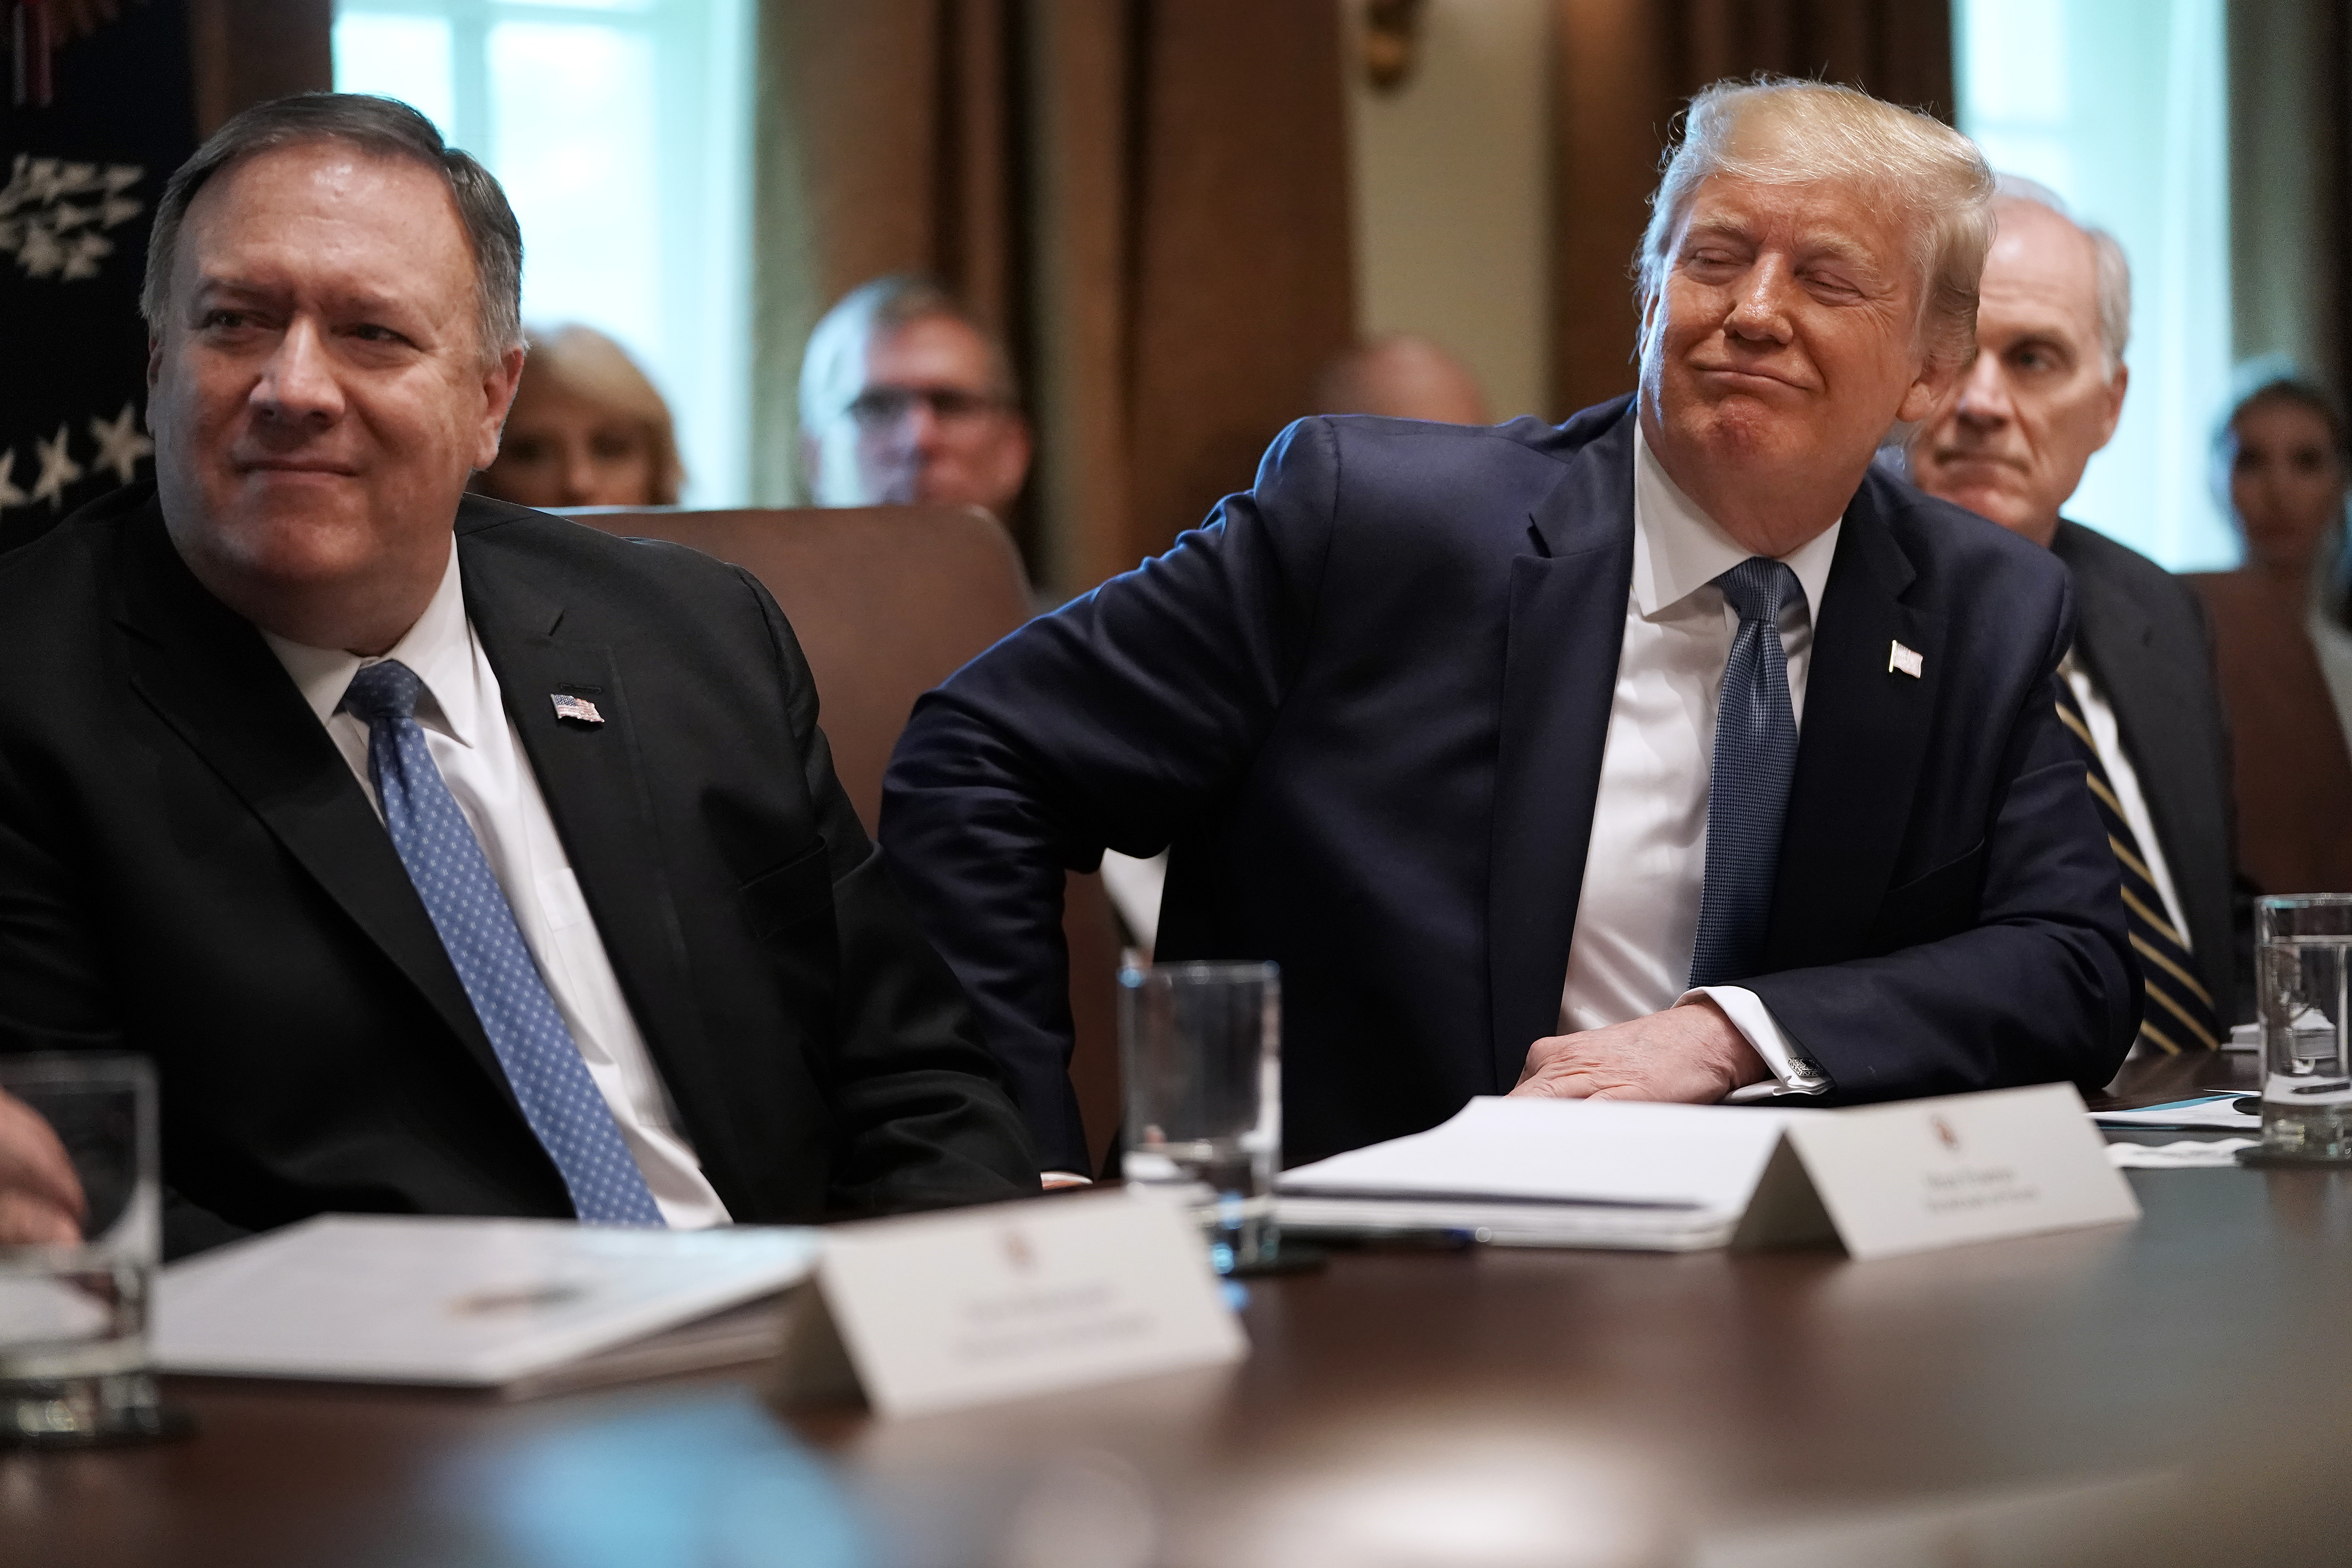 WASHINGTON, DC - JULY 16: U.S. President Donald Trump listens to a presentation about prescription drugs during a cabinet meeting with Secretary of State Mike Pompeo (L), acting Defense Secretary Richard Spencer and others at the White House July 16, 2019 in Washington, DC. Trump and members of his administration addressed a wide variety of subjects, including Iran, opportunity zones, drug prices, HIV/AIDS, immigration and other subjects for more than an hour. (Photo by Chip Somodevilla/Getty Images)